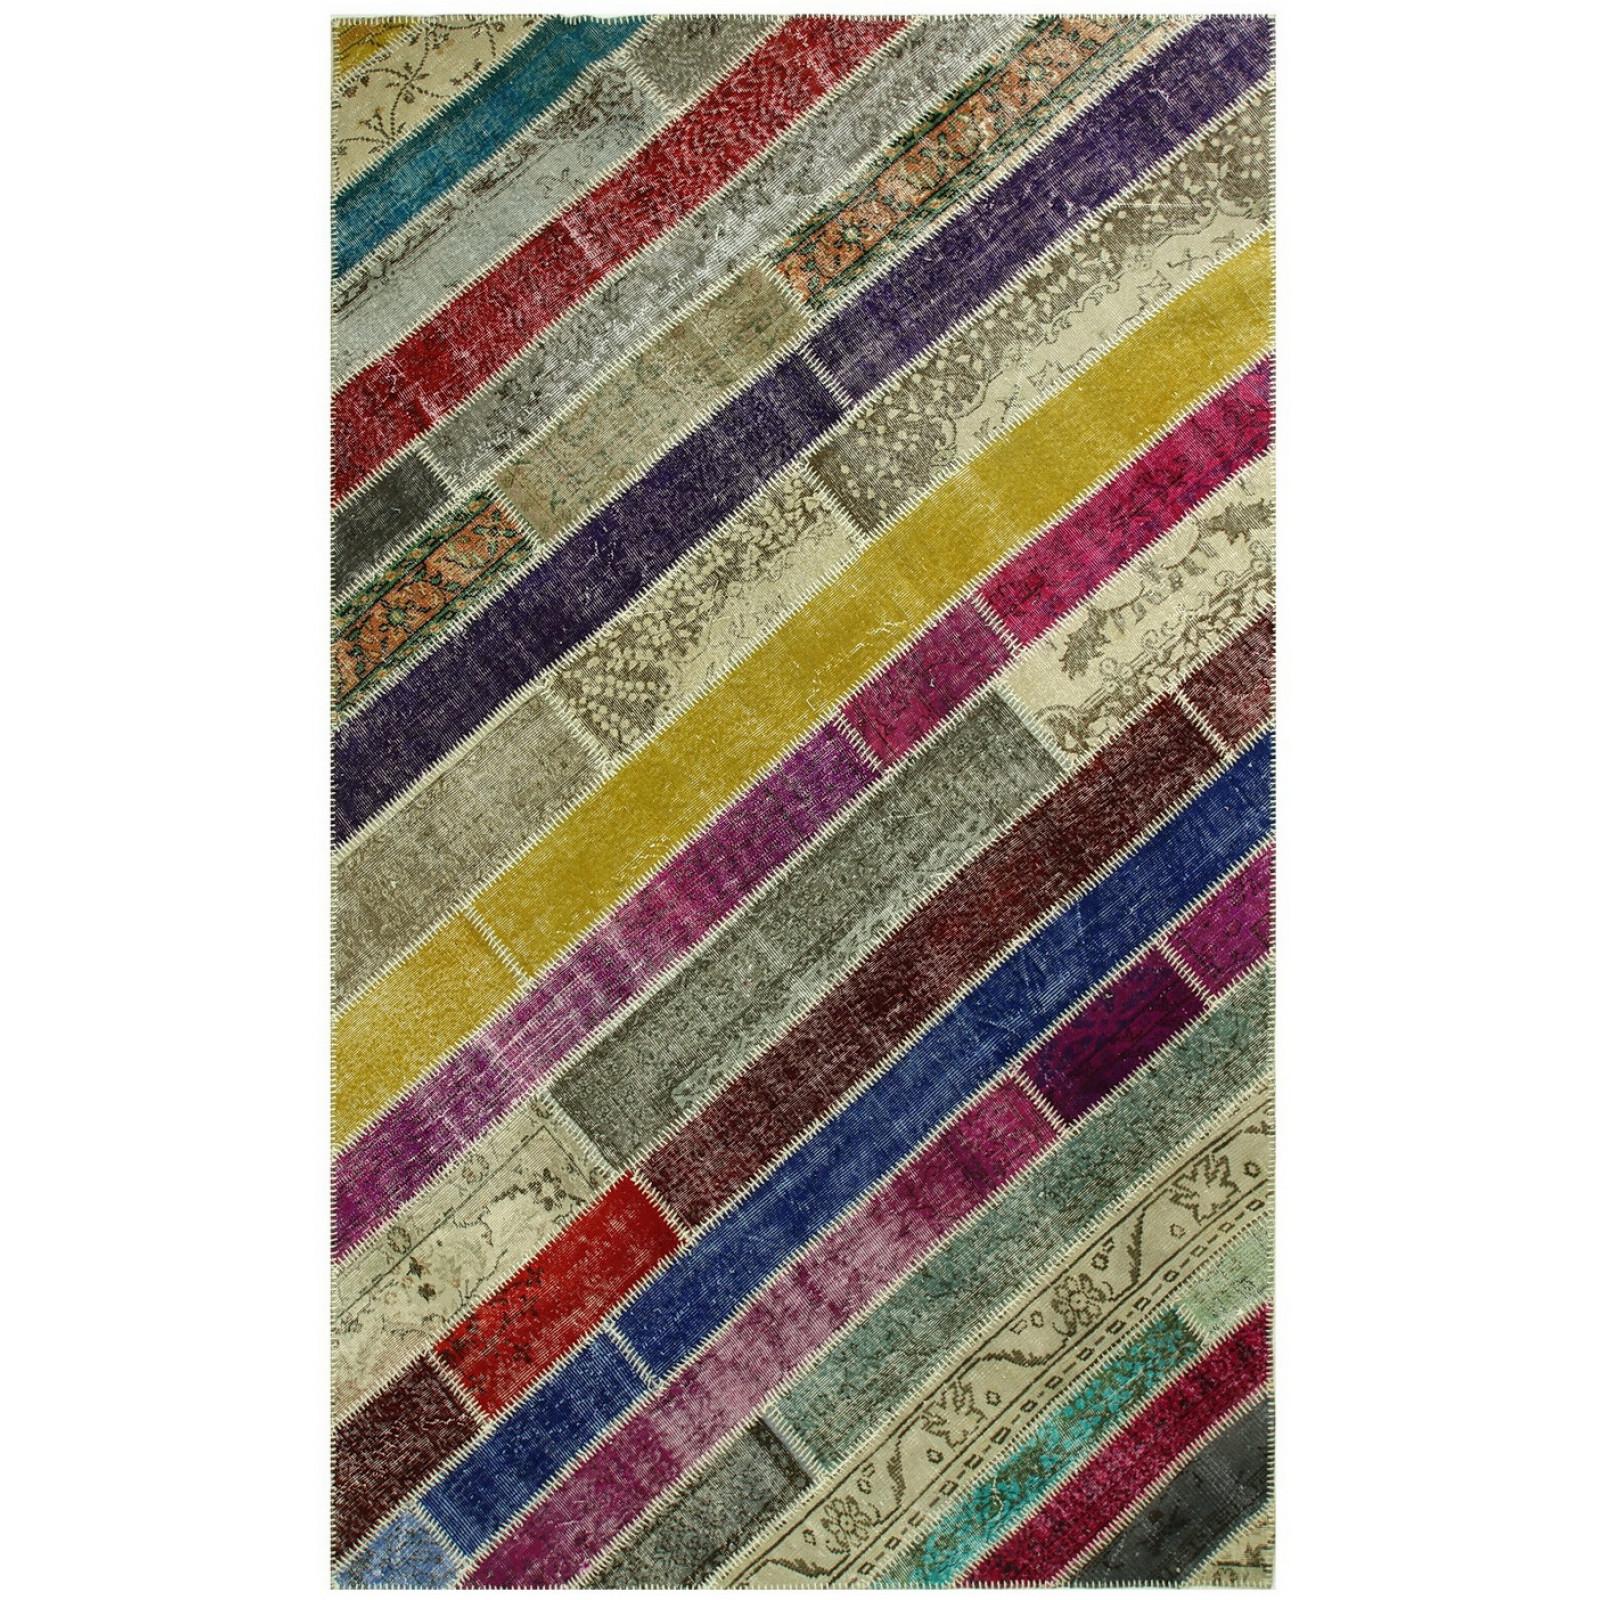 7131- CLEARANCE Carpets -Old handmade carpets are collected from different  cities, towns andvillages